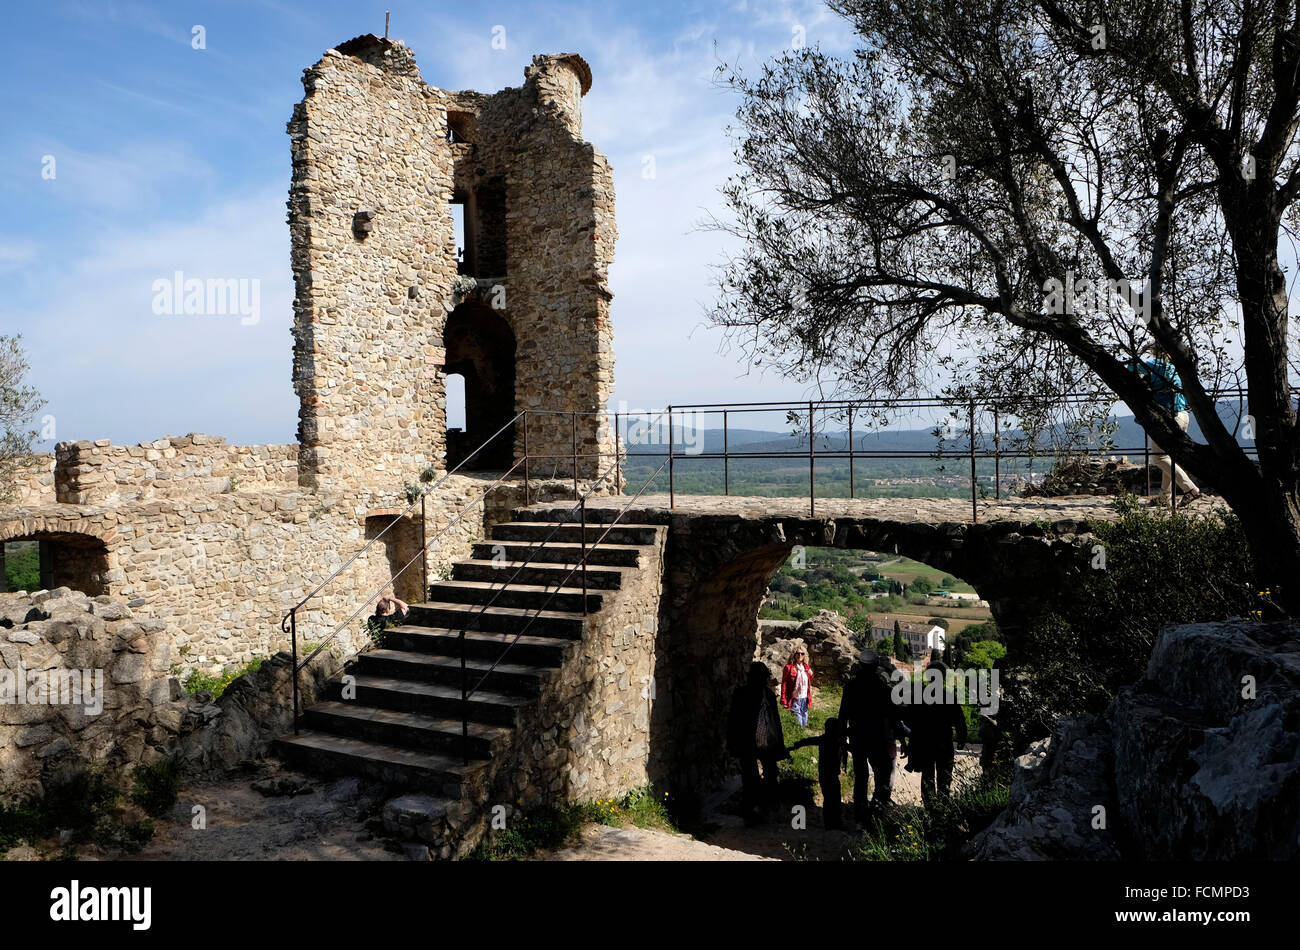 Grimaud, South of France, showing part of the ruined castle. - Stock Image